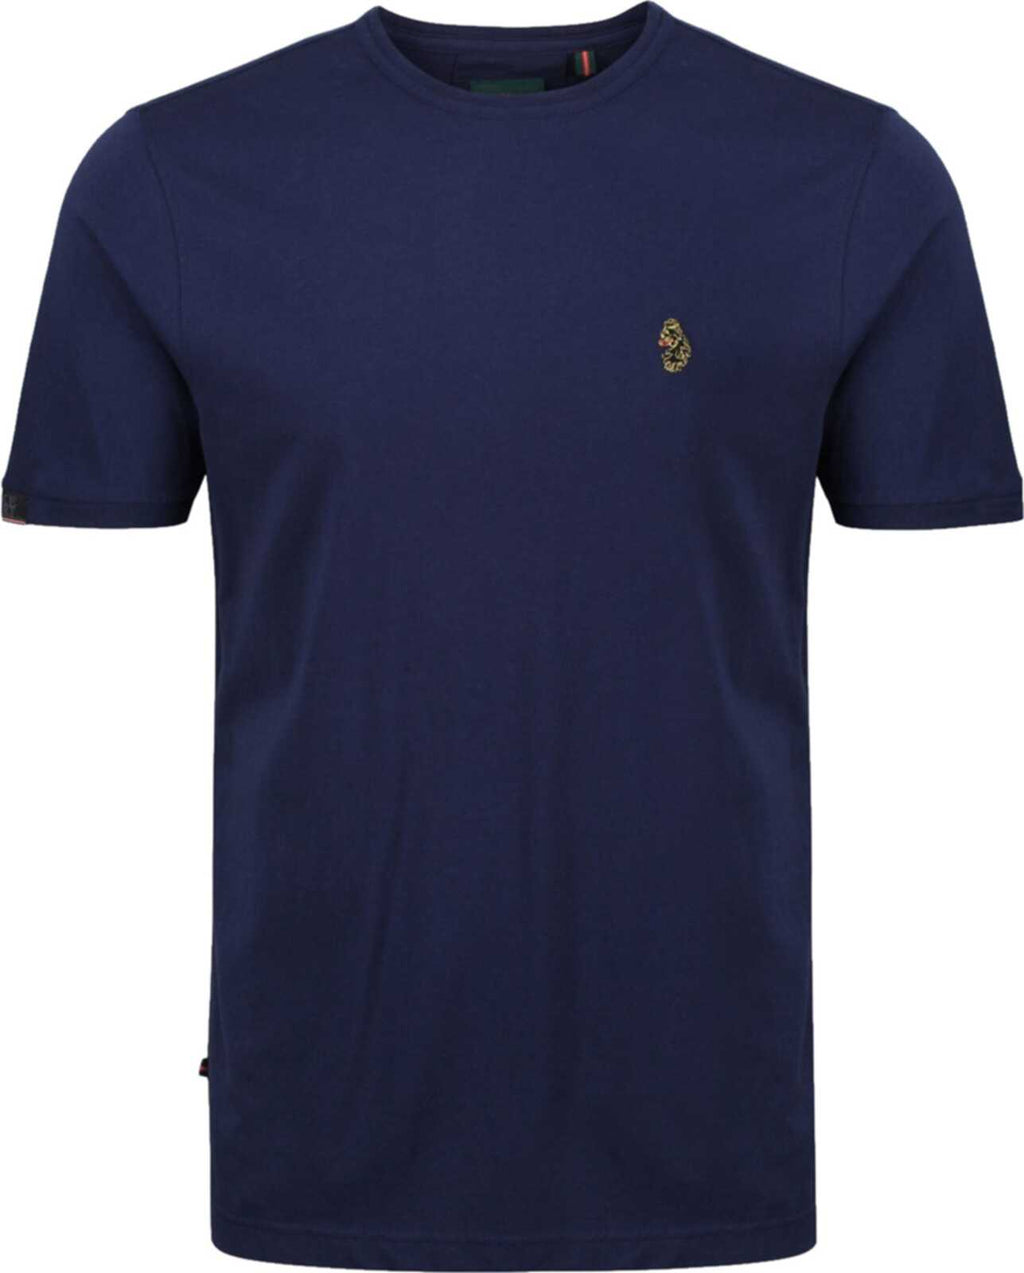 Luke 1977 Traffs T-Shirt Navy